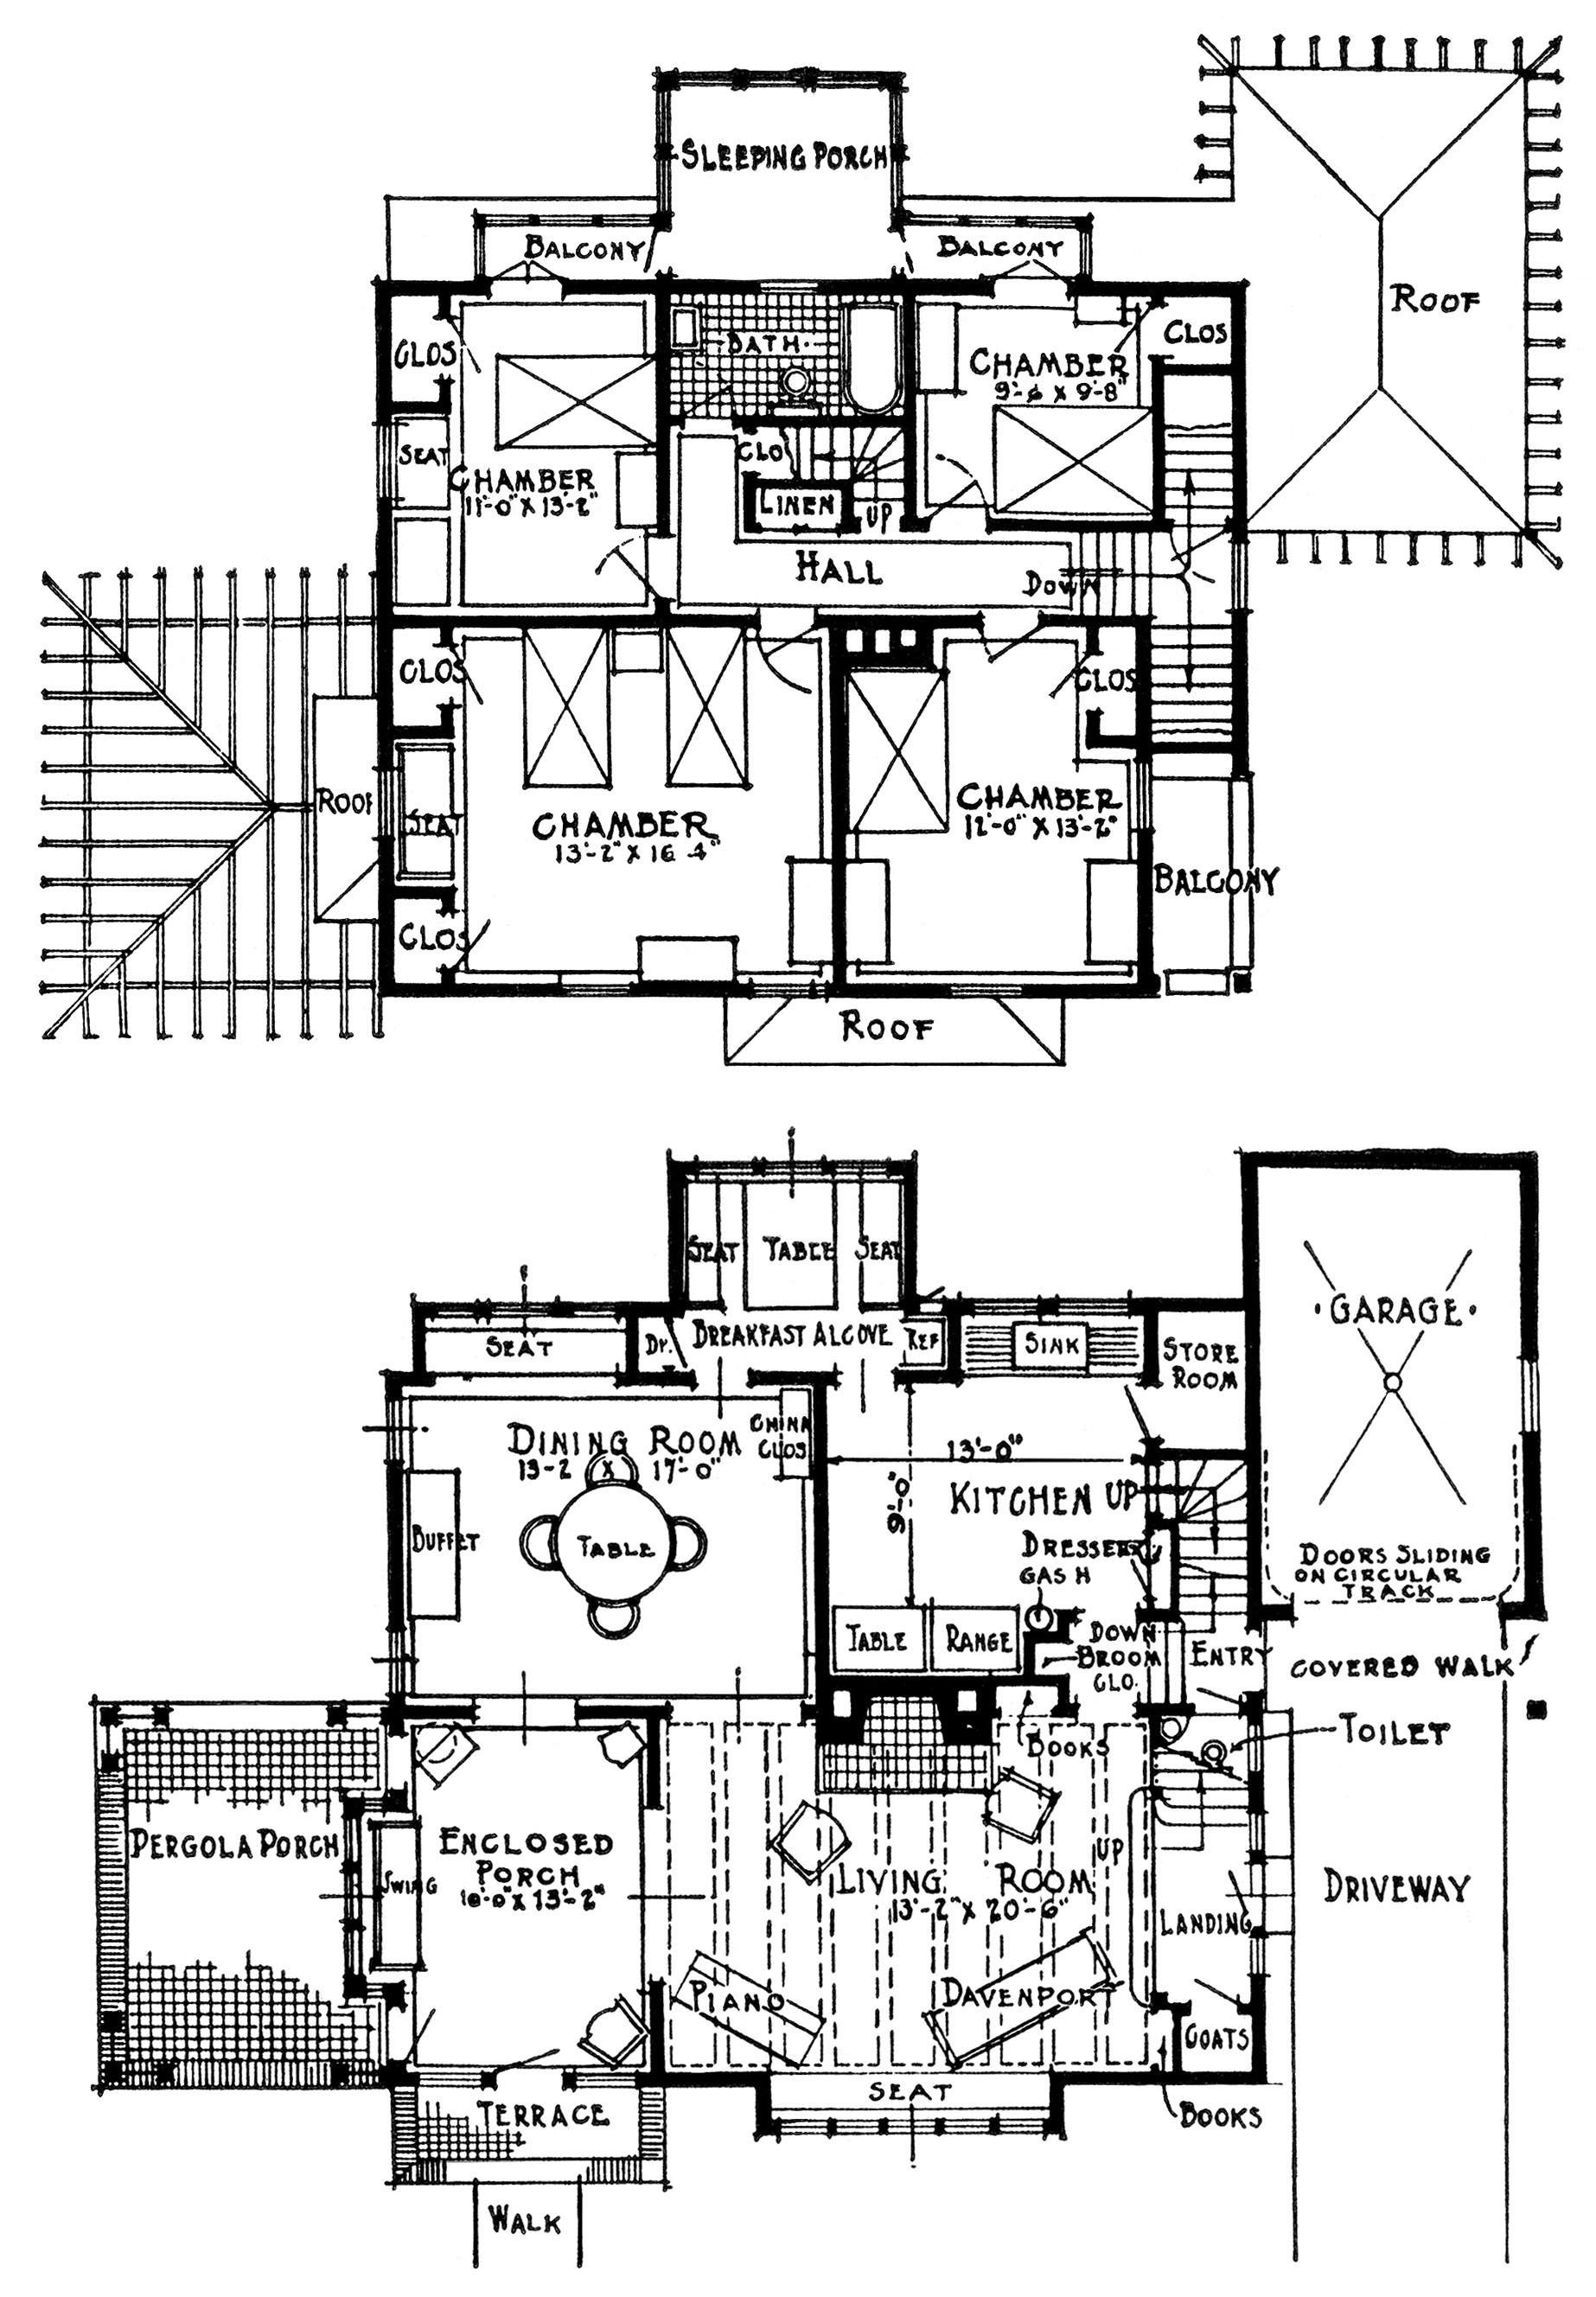 Vintage homes with attached garages old design shop blog for Shop floor plans